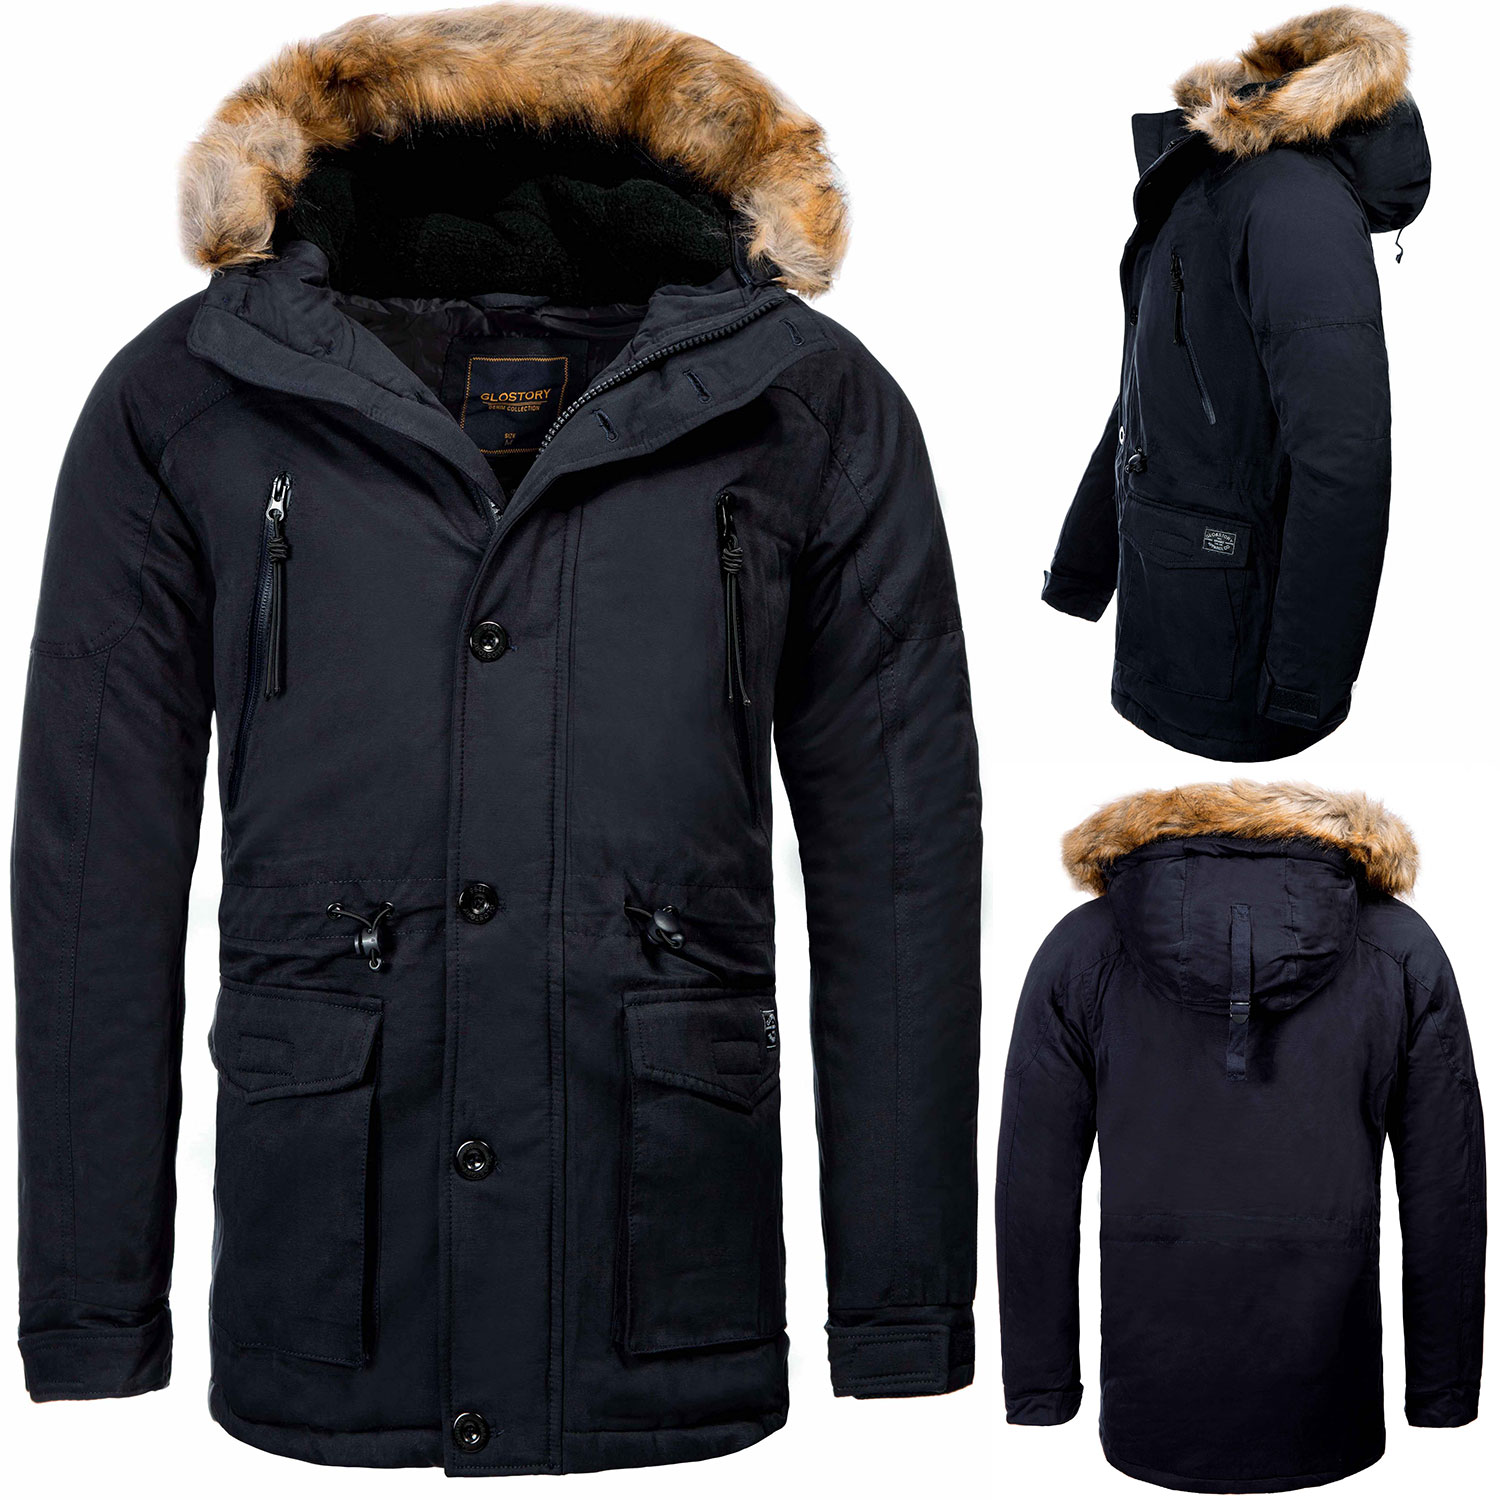 s rpreme herren winter parka kapuze winter mantel stepp jacke bomber bergangs ebay. Black Bedroom Furniture Sets. Home Design Ideas